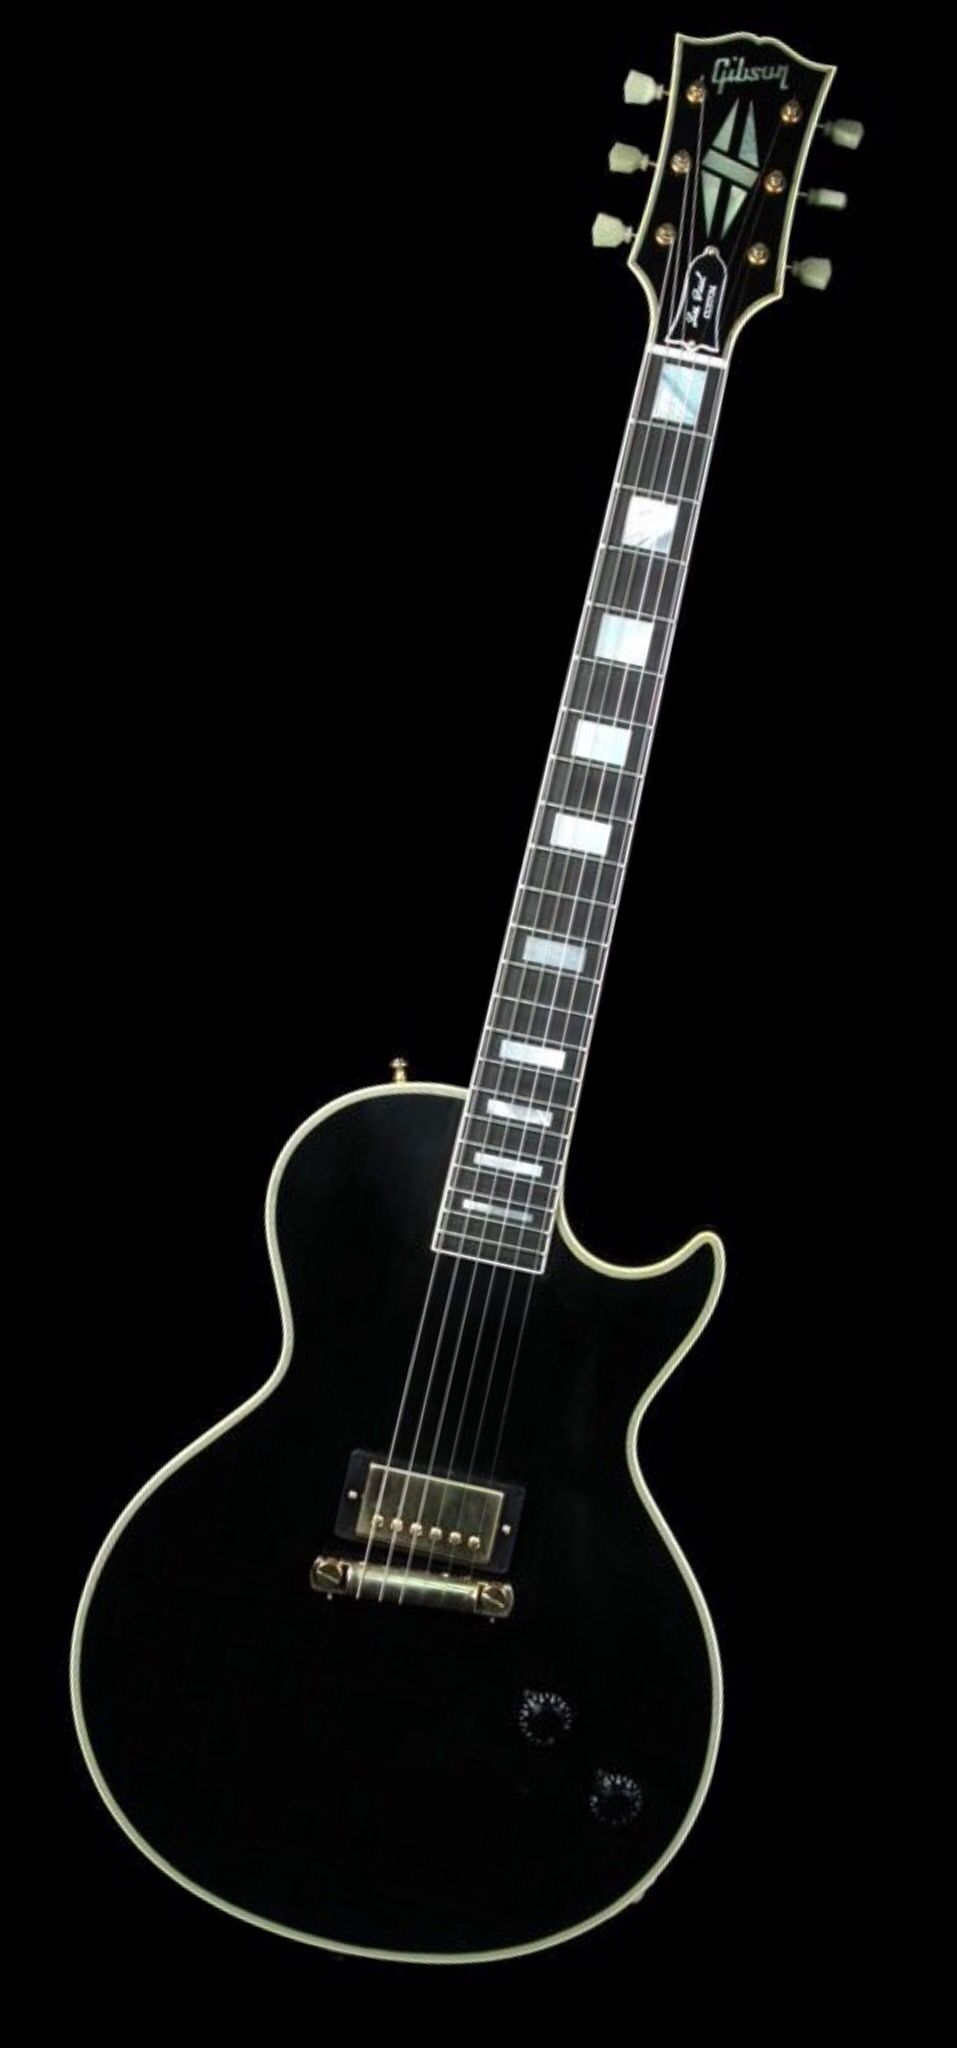 Gibson Custom Shop Limited 57 Single Pickup Les Paul Custom Vos